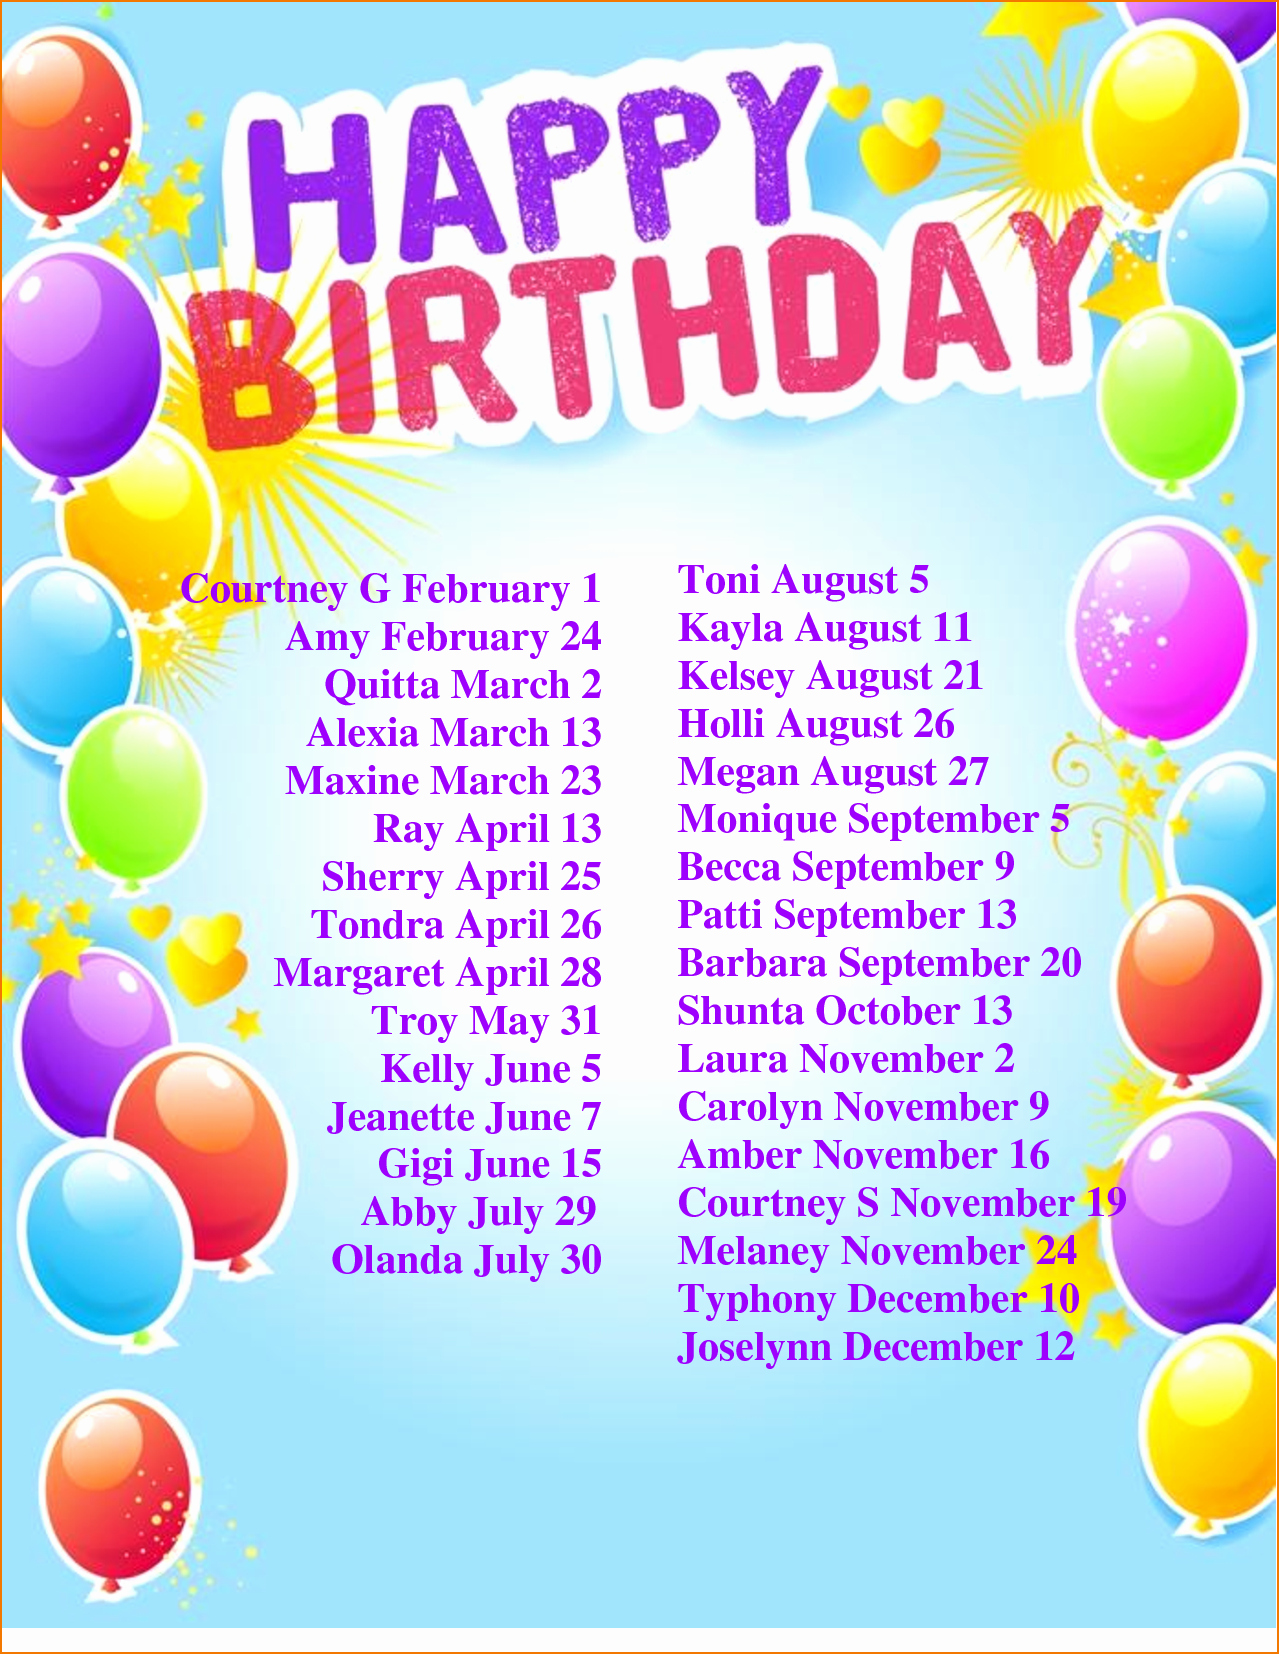 Employee Birthday List Template Luxury Birthday List Template Excel Employee Free Financial